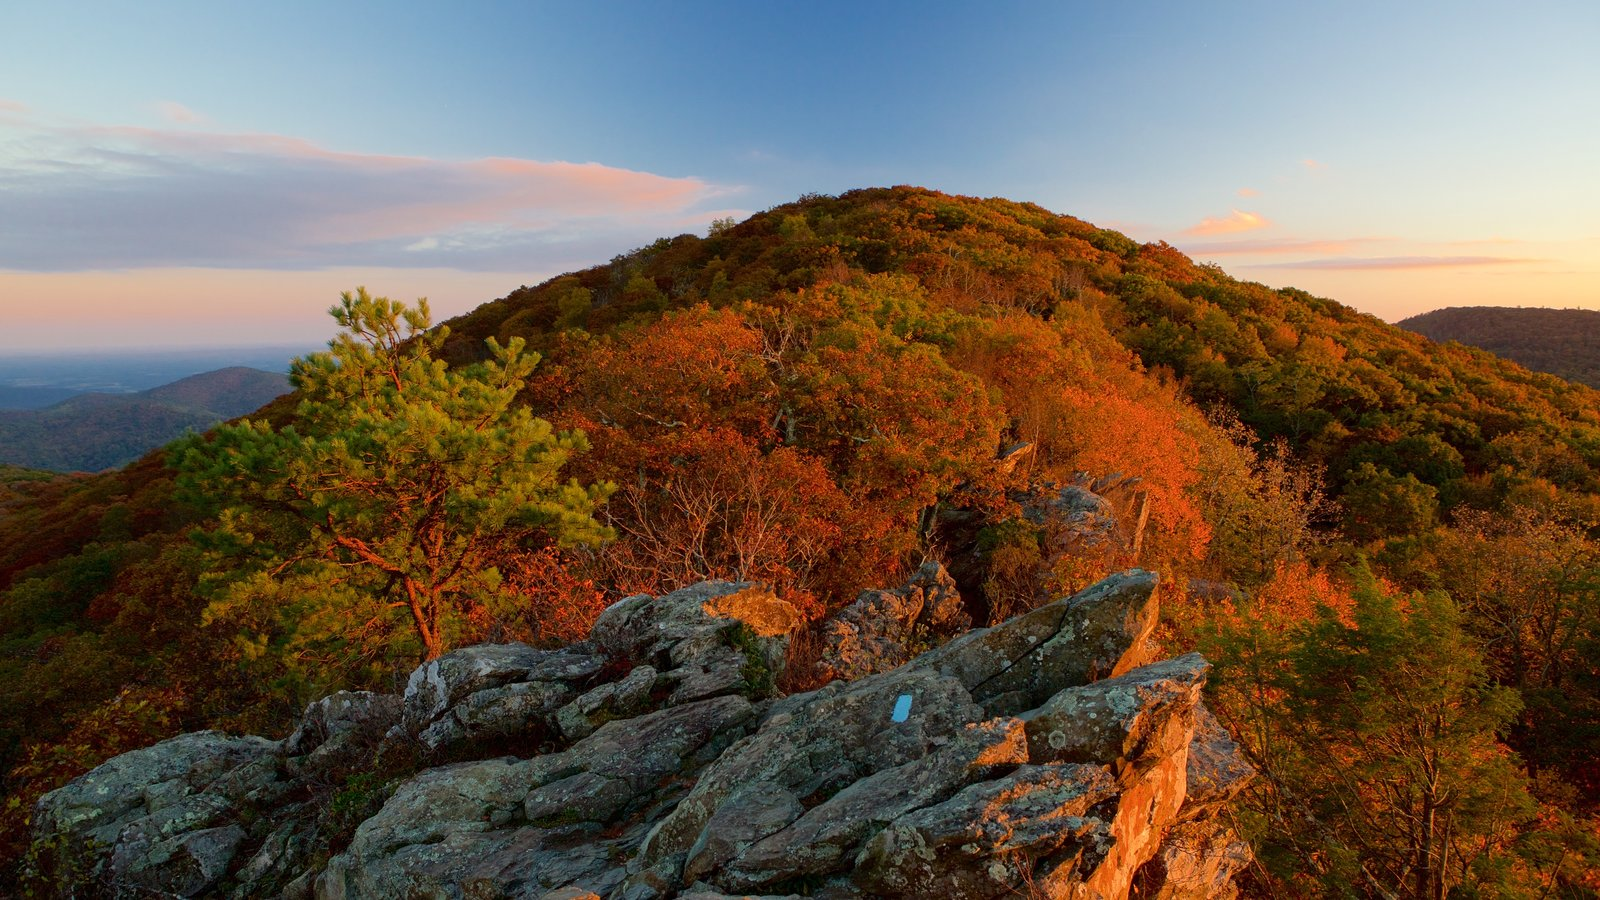 Shenandoah National Park featuring forests, mountains and a sunset